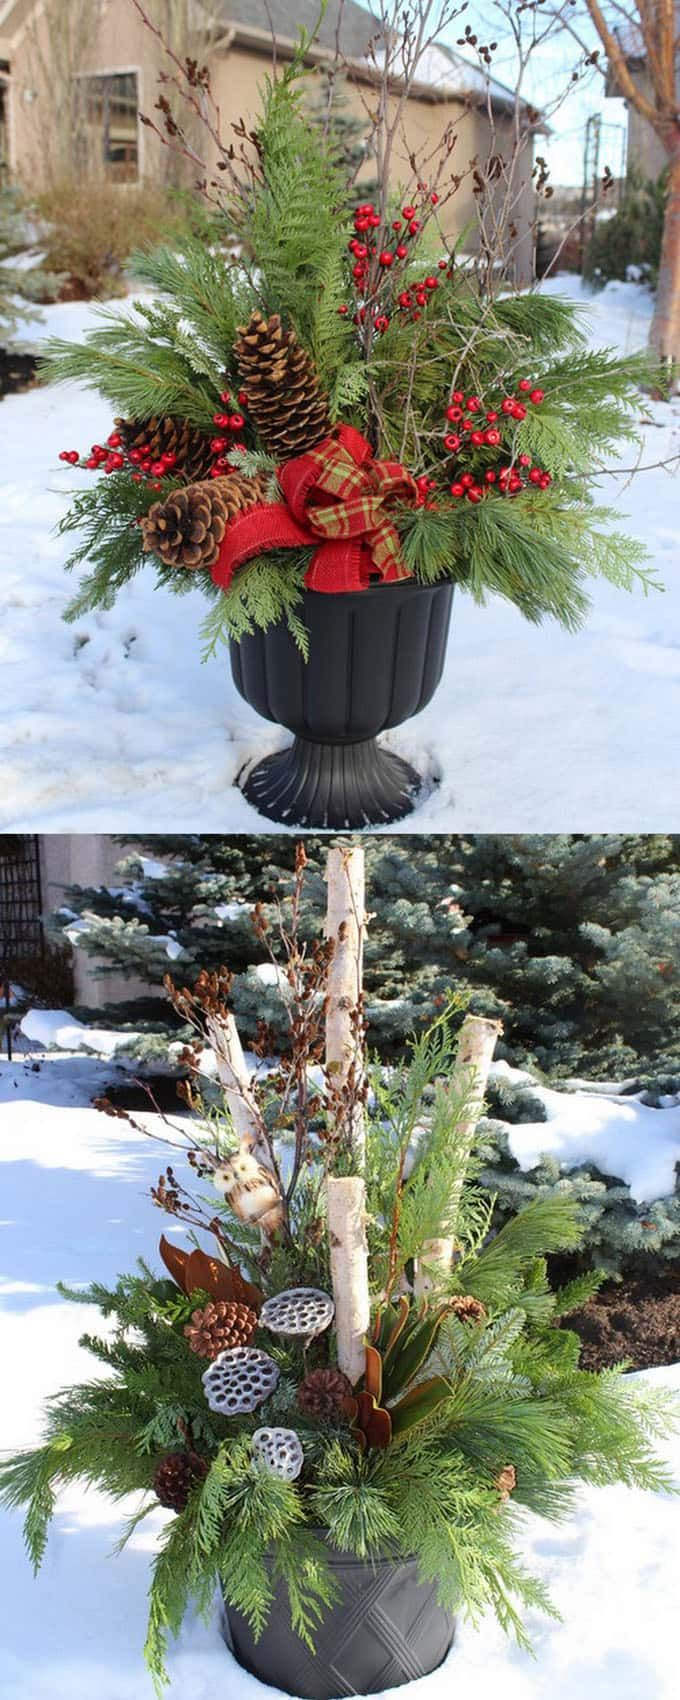 How to create colorful winter outdoor planters and beautiful Christmas planters with plant cuttings and decorative elements that last for a long time! - A Piece of Rainbow (Christmas Party Decorations)